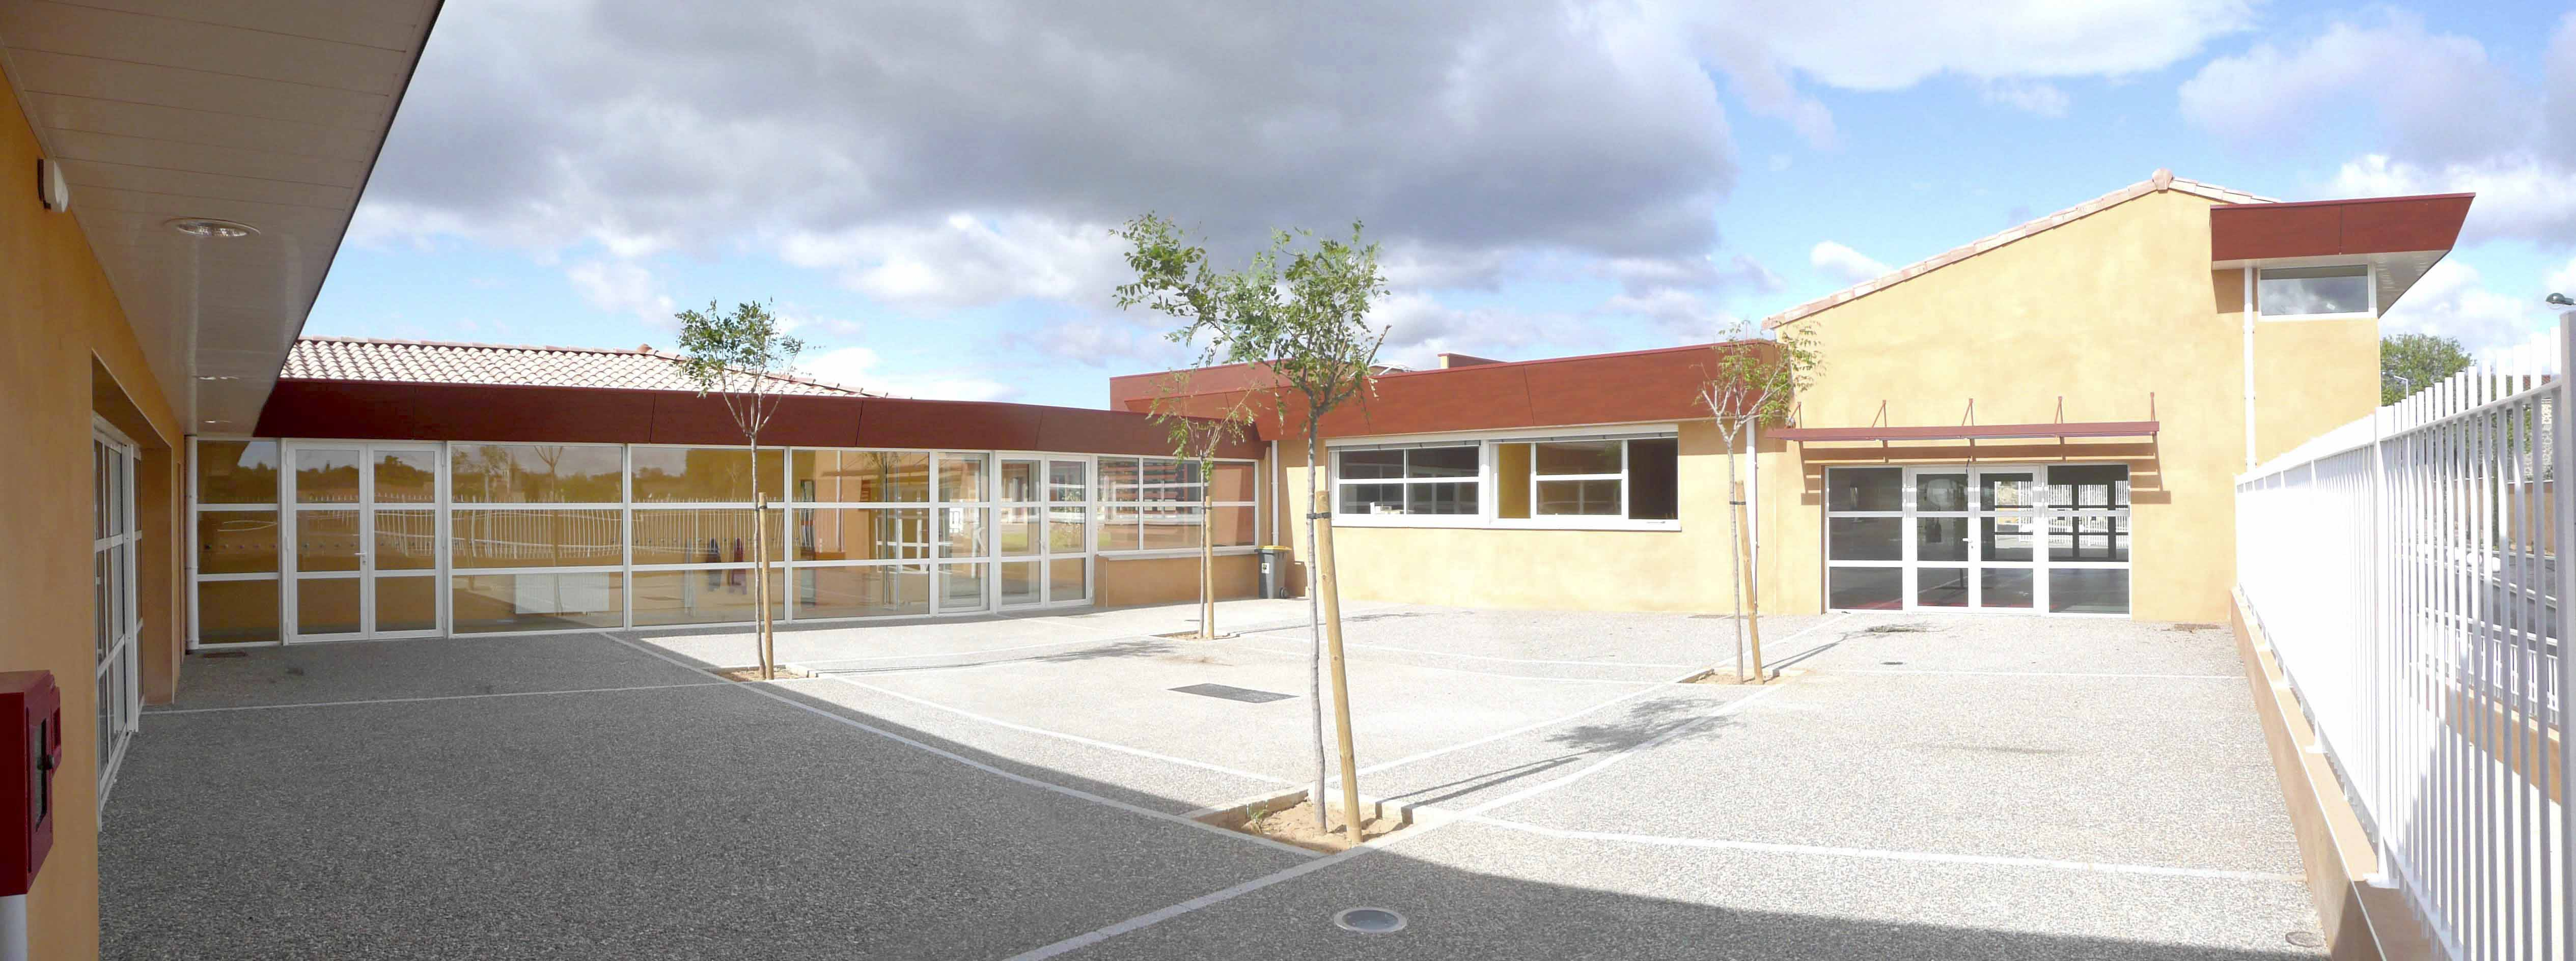 Groupe scolaire Hérault BF Architecture 2